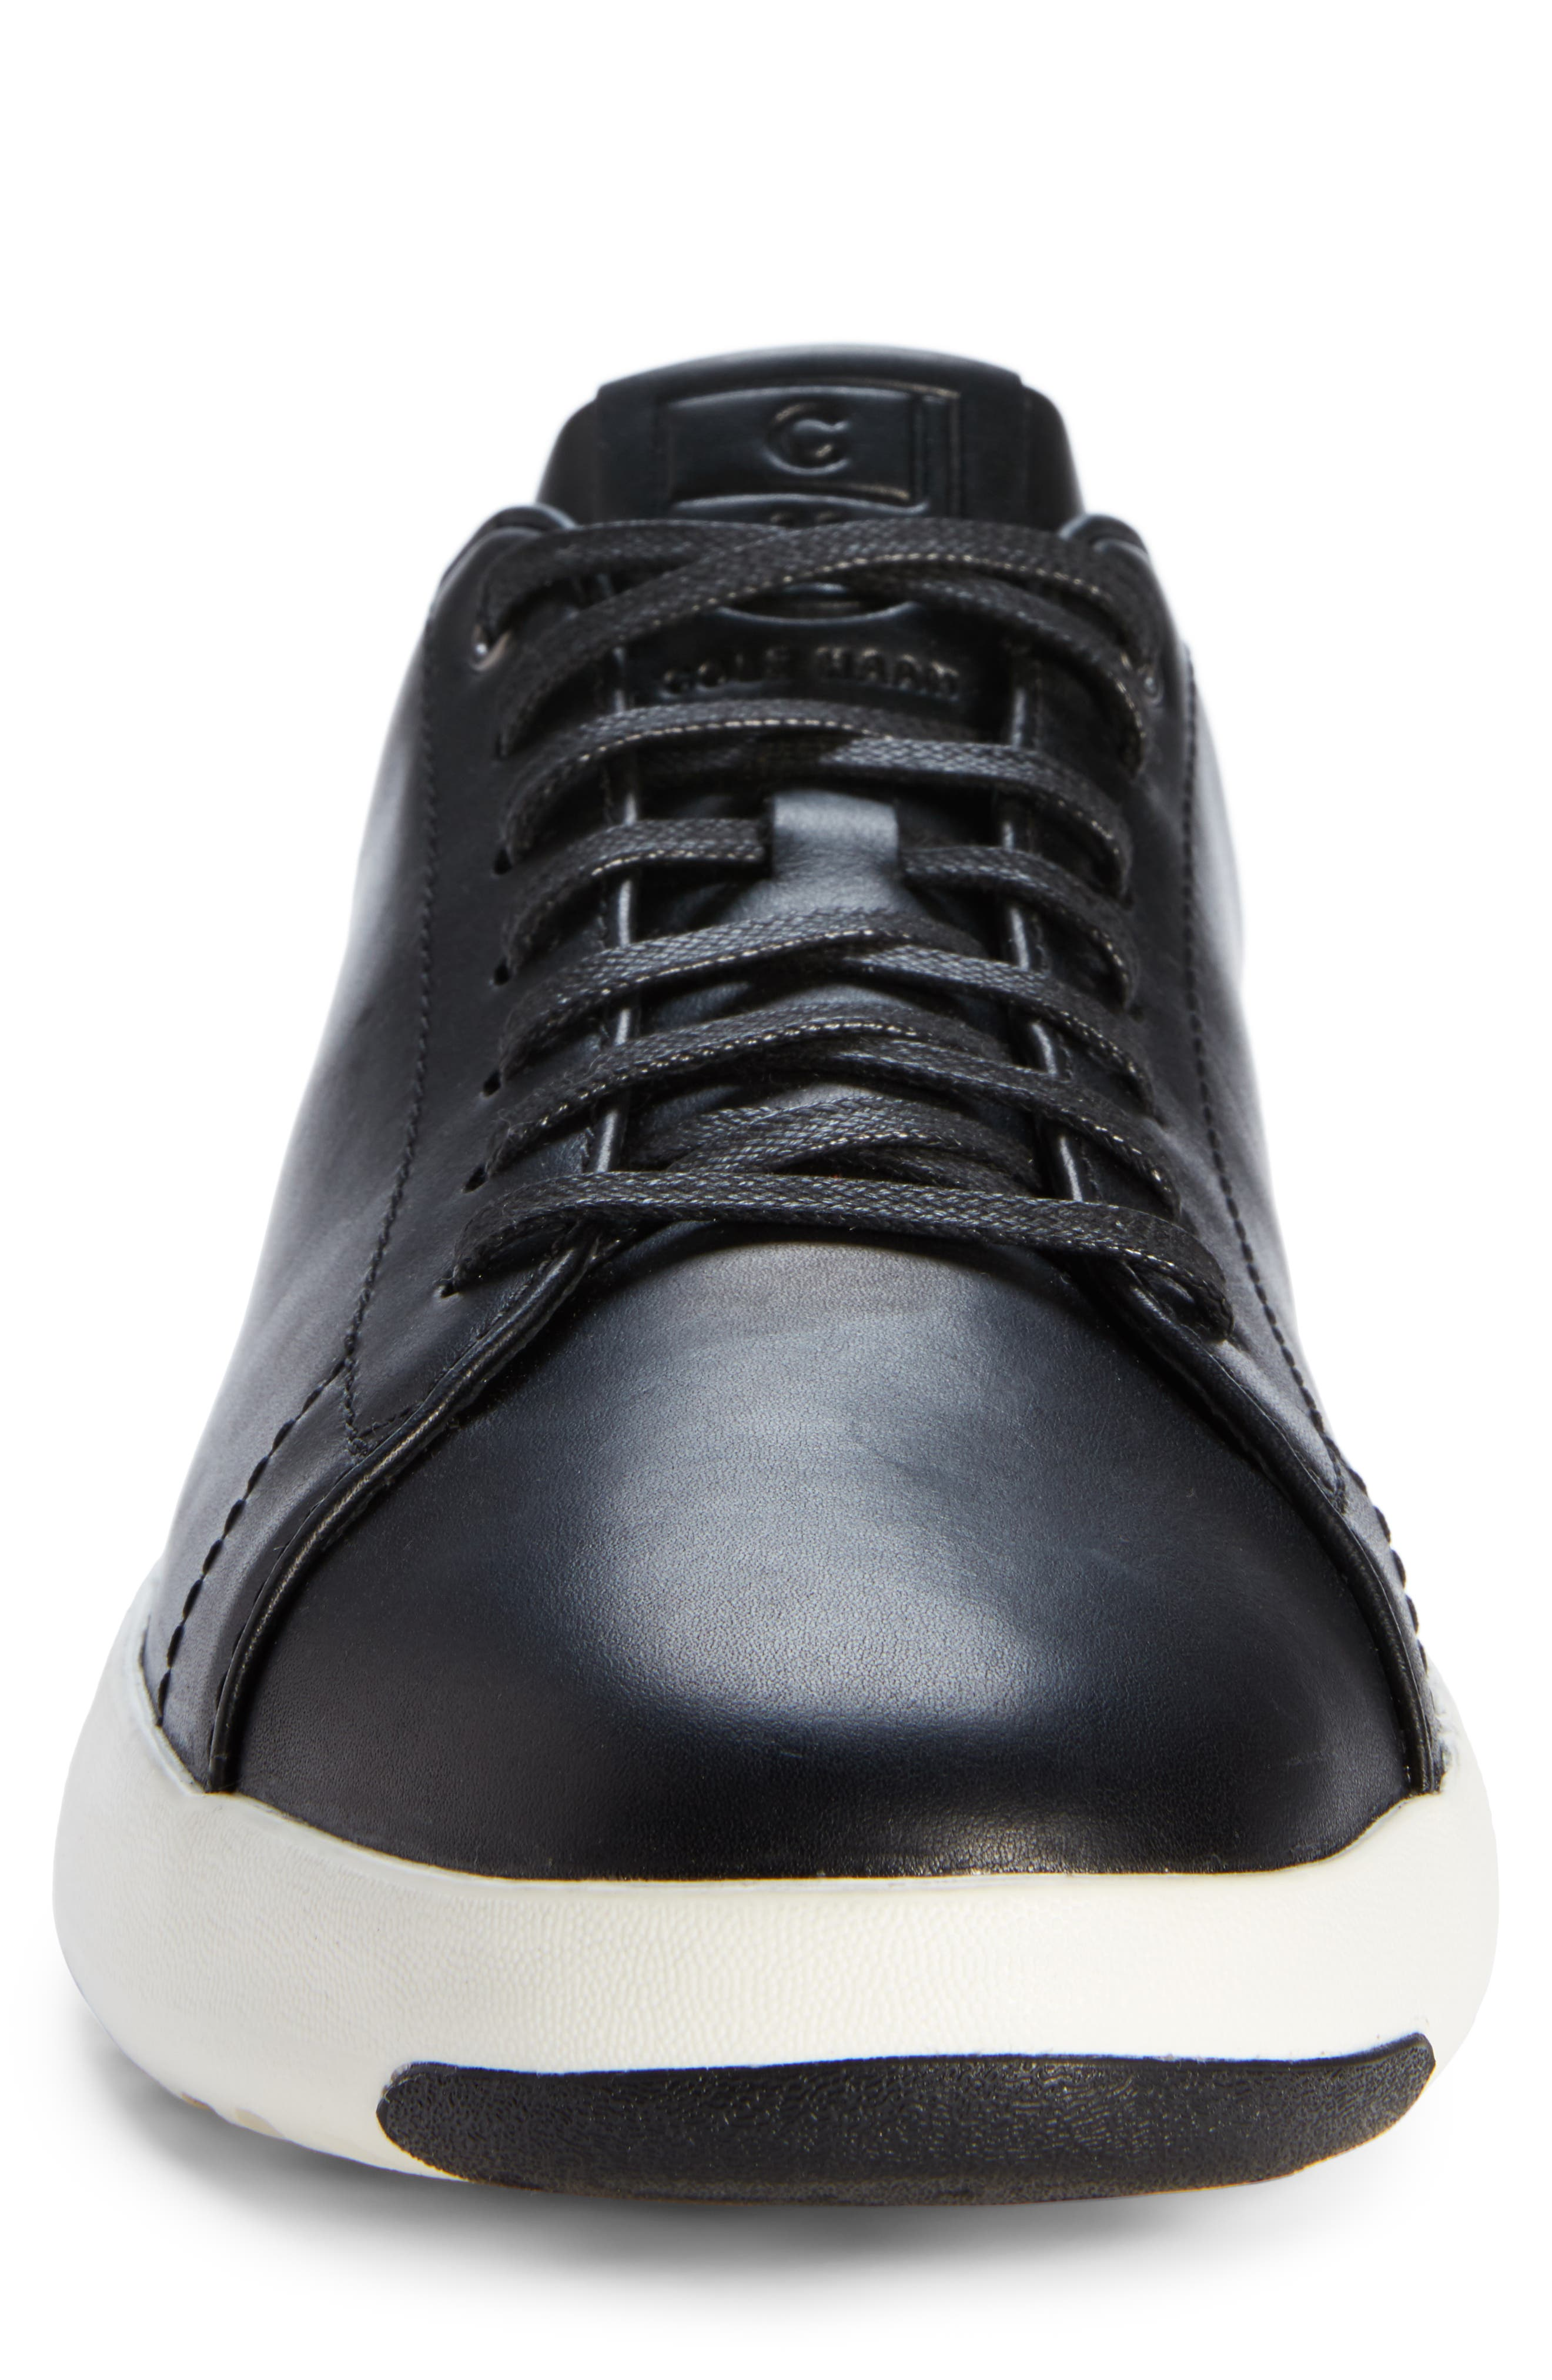 GrandPro Tennis Sneaker,                             Alternate thumbnail 4, color,                             004